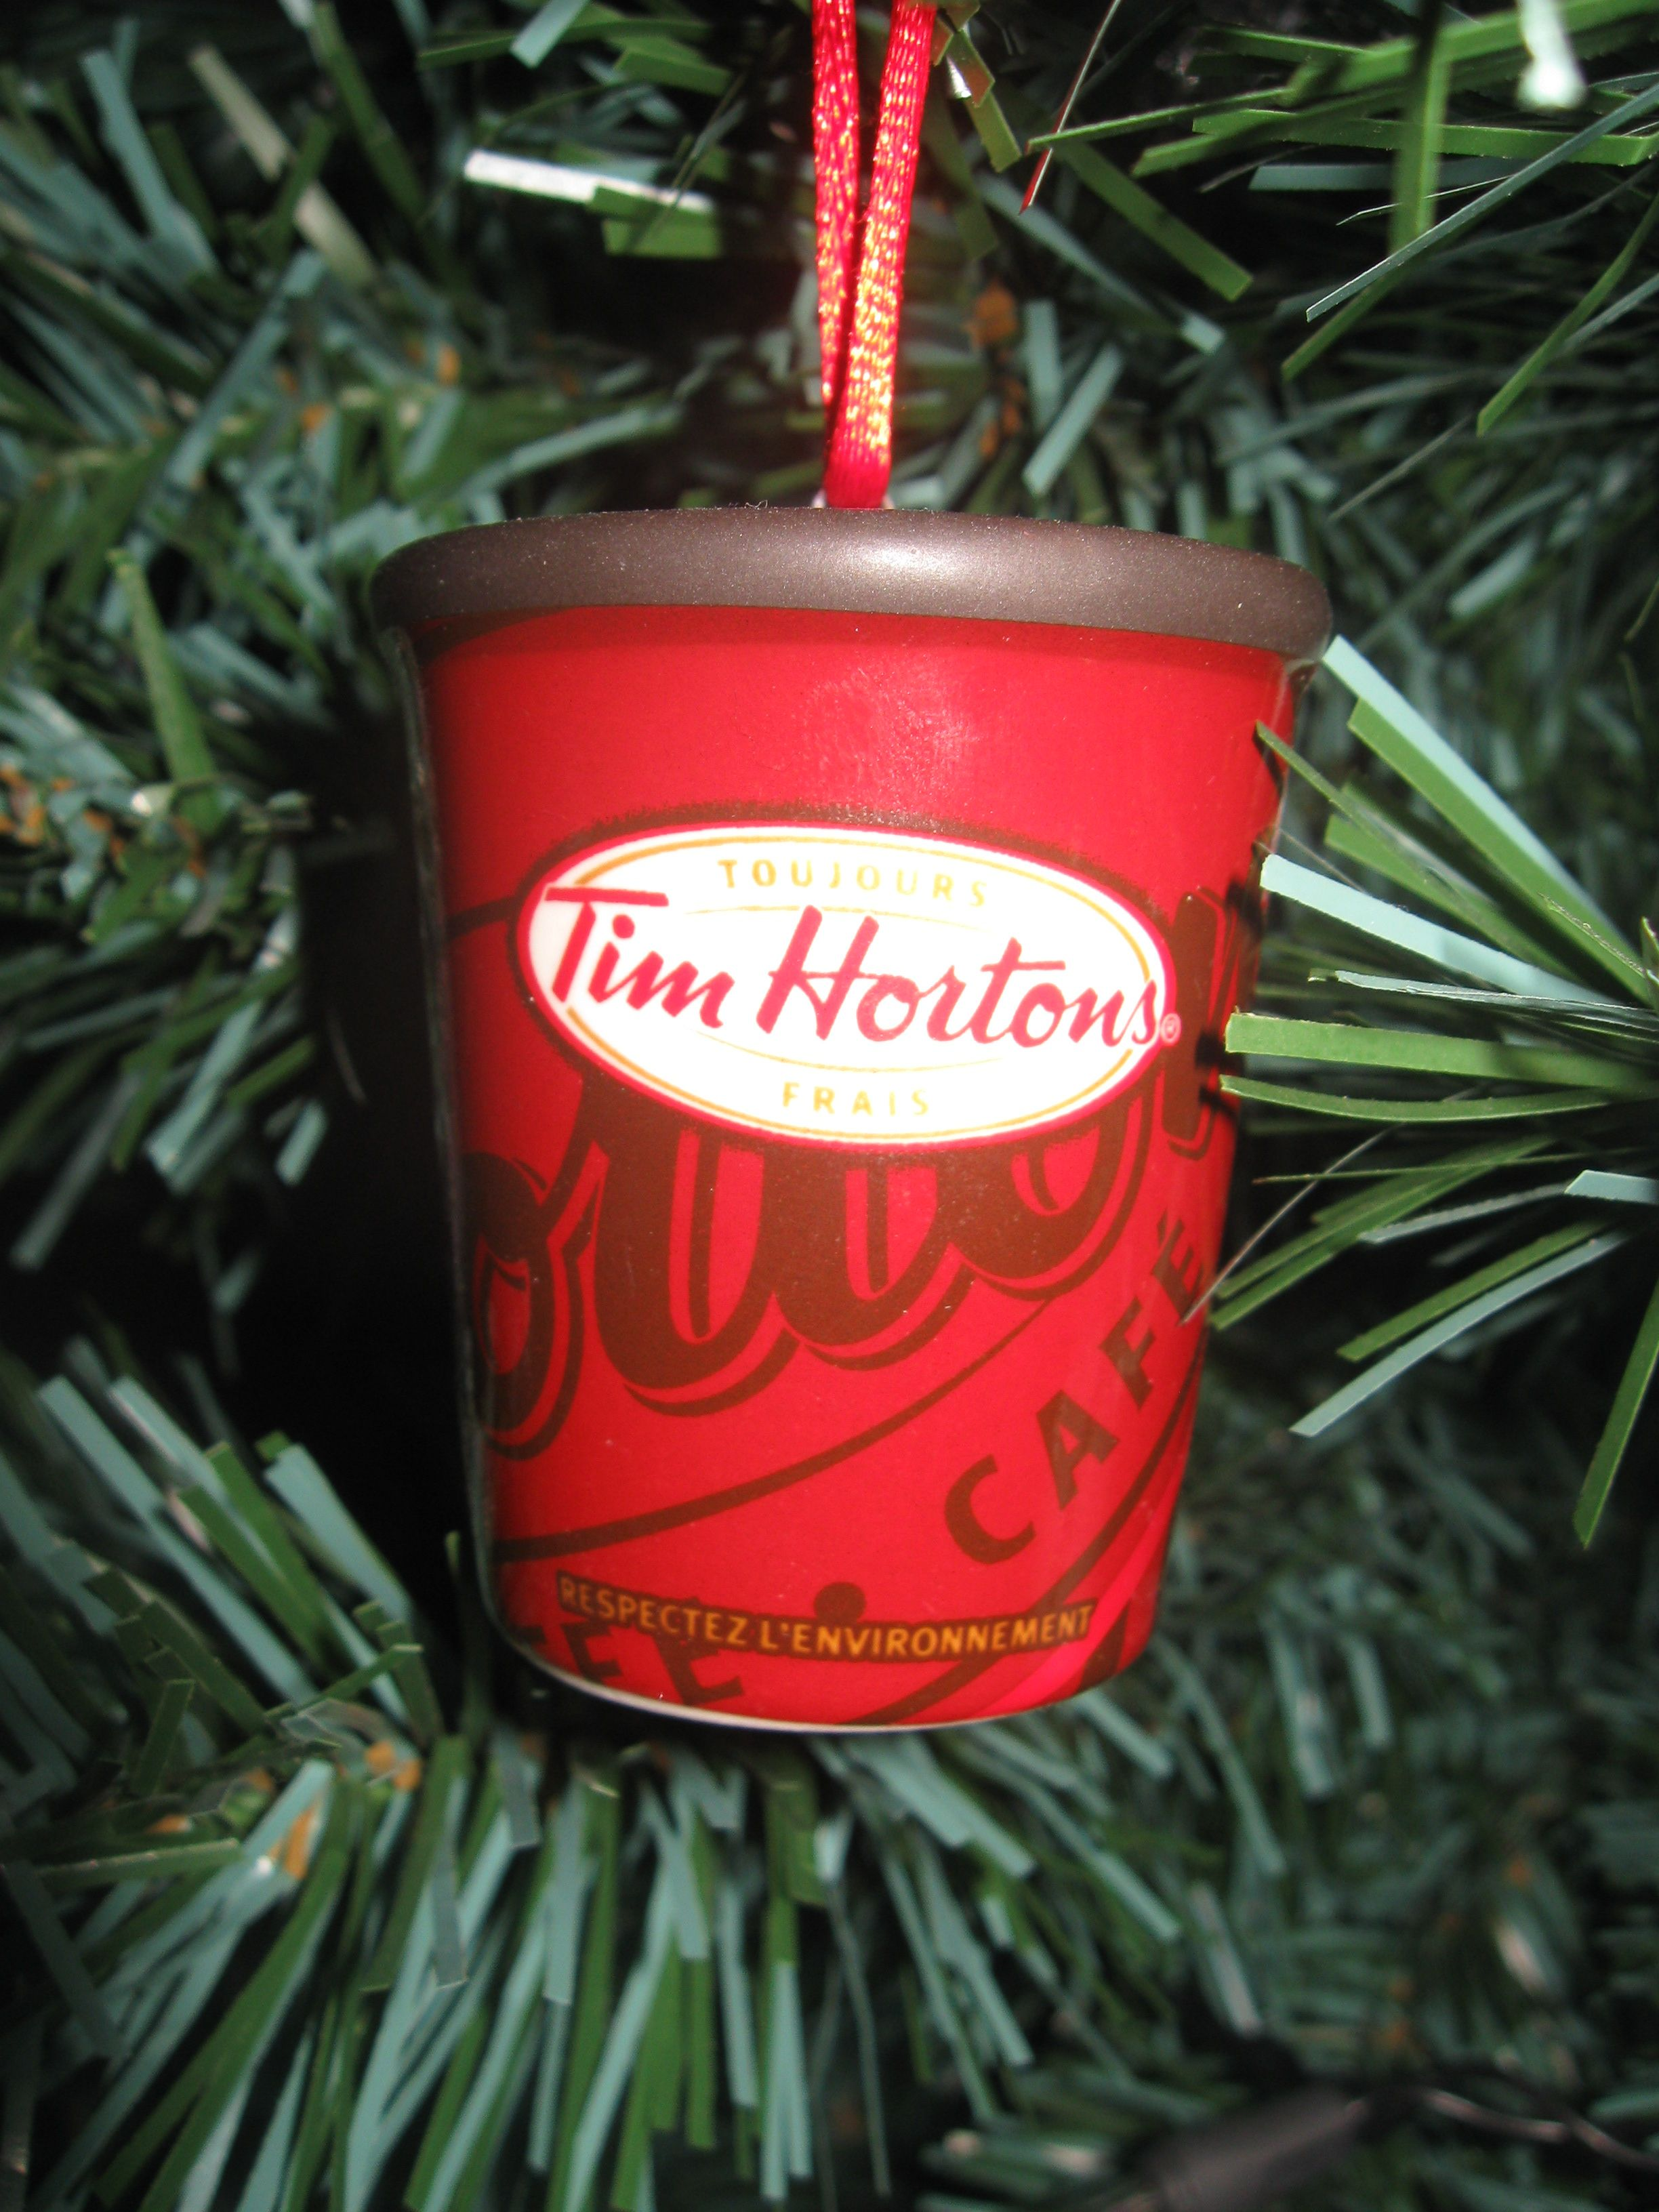 Pin By Hayley Phillips On Canada My Home Native Land Tim Hortons Tim Hortons Coffee Christmas Tree Ornaments